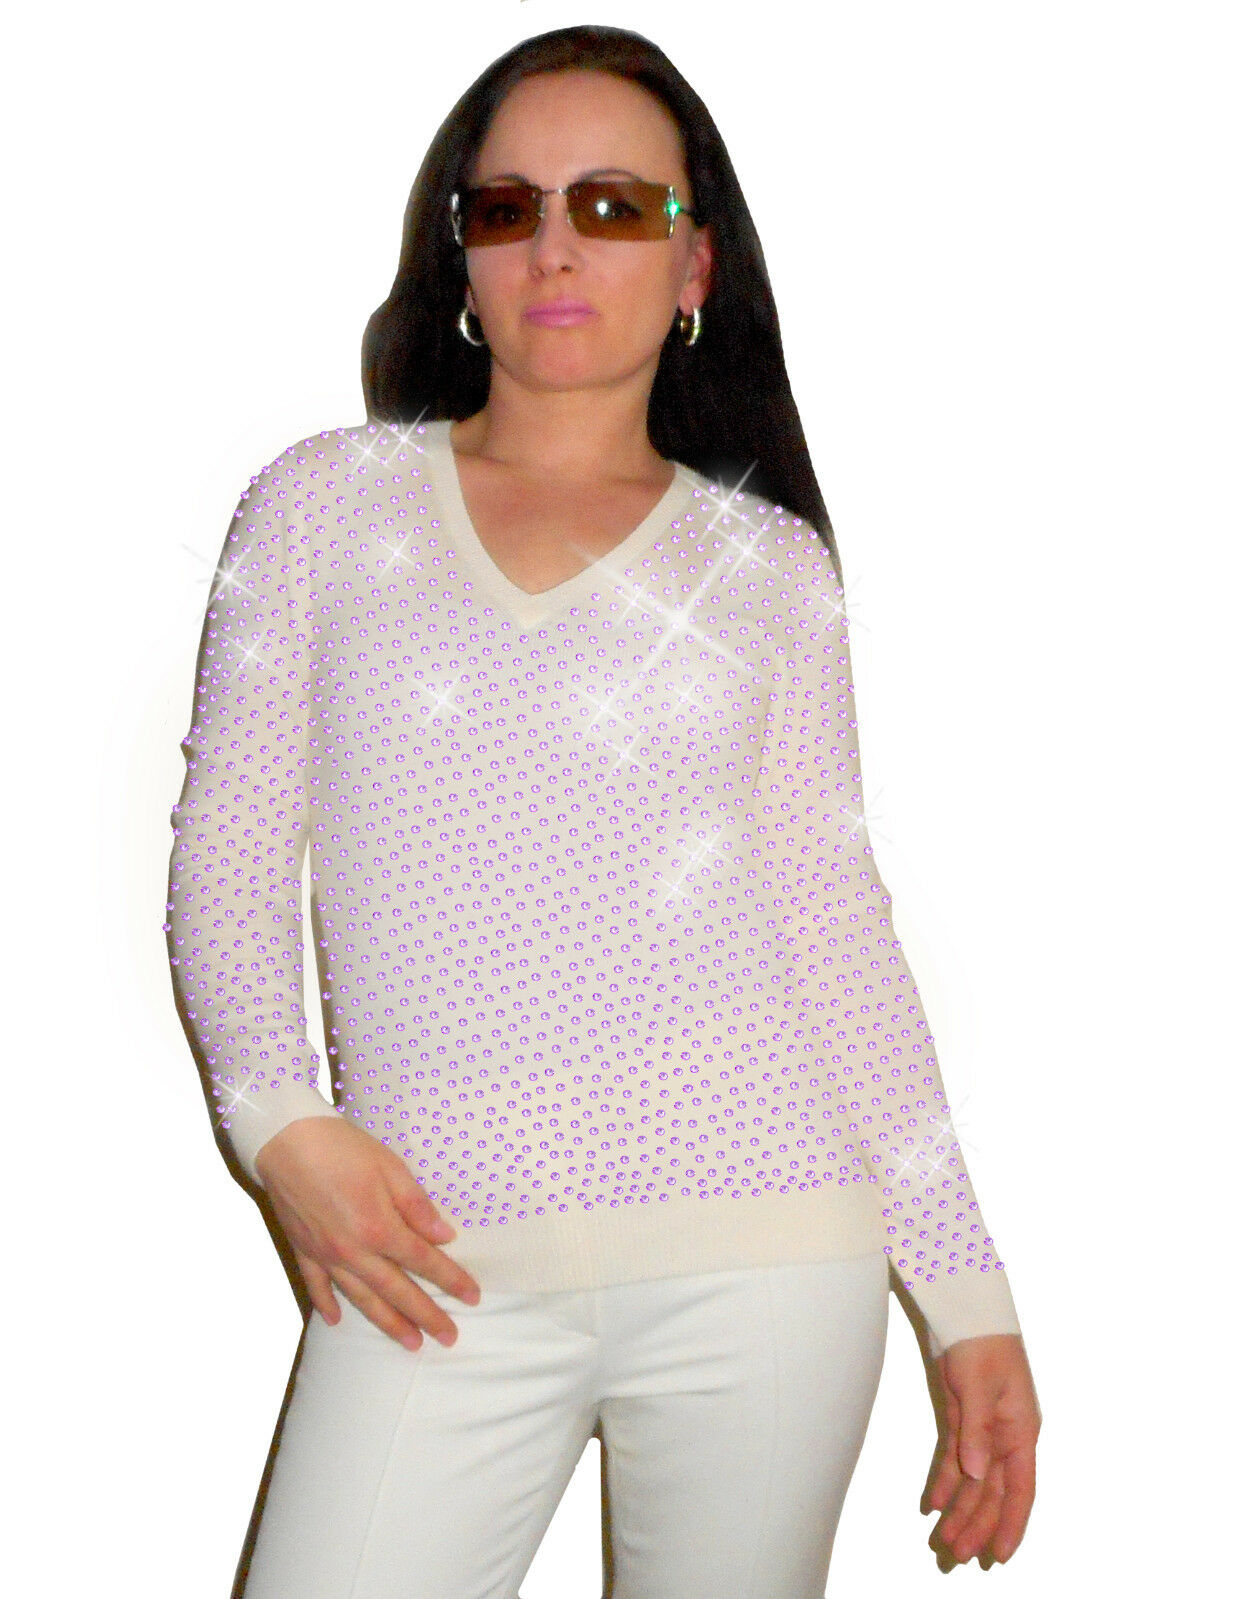 Luxe Oh` Dor 100% Cashmere Sweater Elite White Amethyst Amethyst Amethyst Purple 42 144 5 12FT   L 0650ac